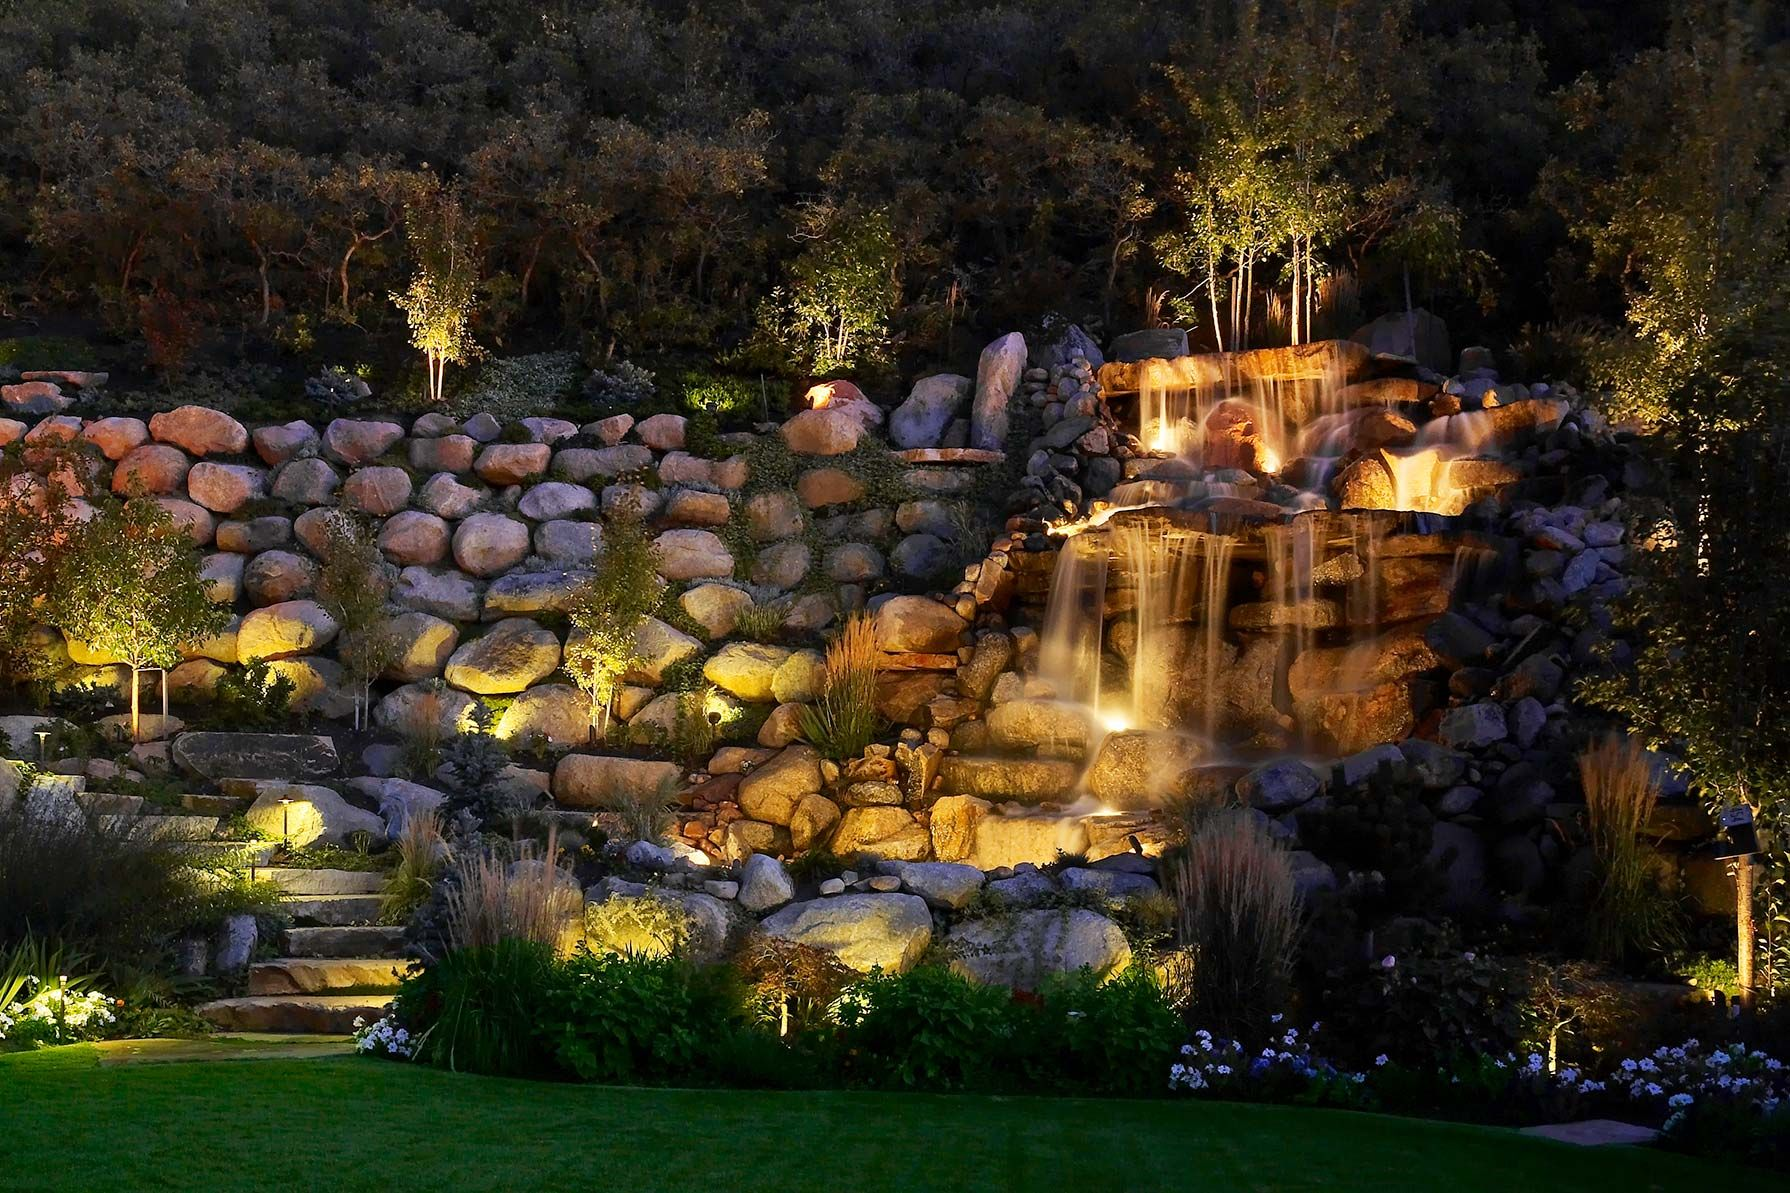 Marvelous Lowes Water Fountain Furnishing Beauty Garden Design Amazing Outdoor Lights Lowes